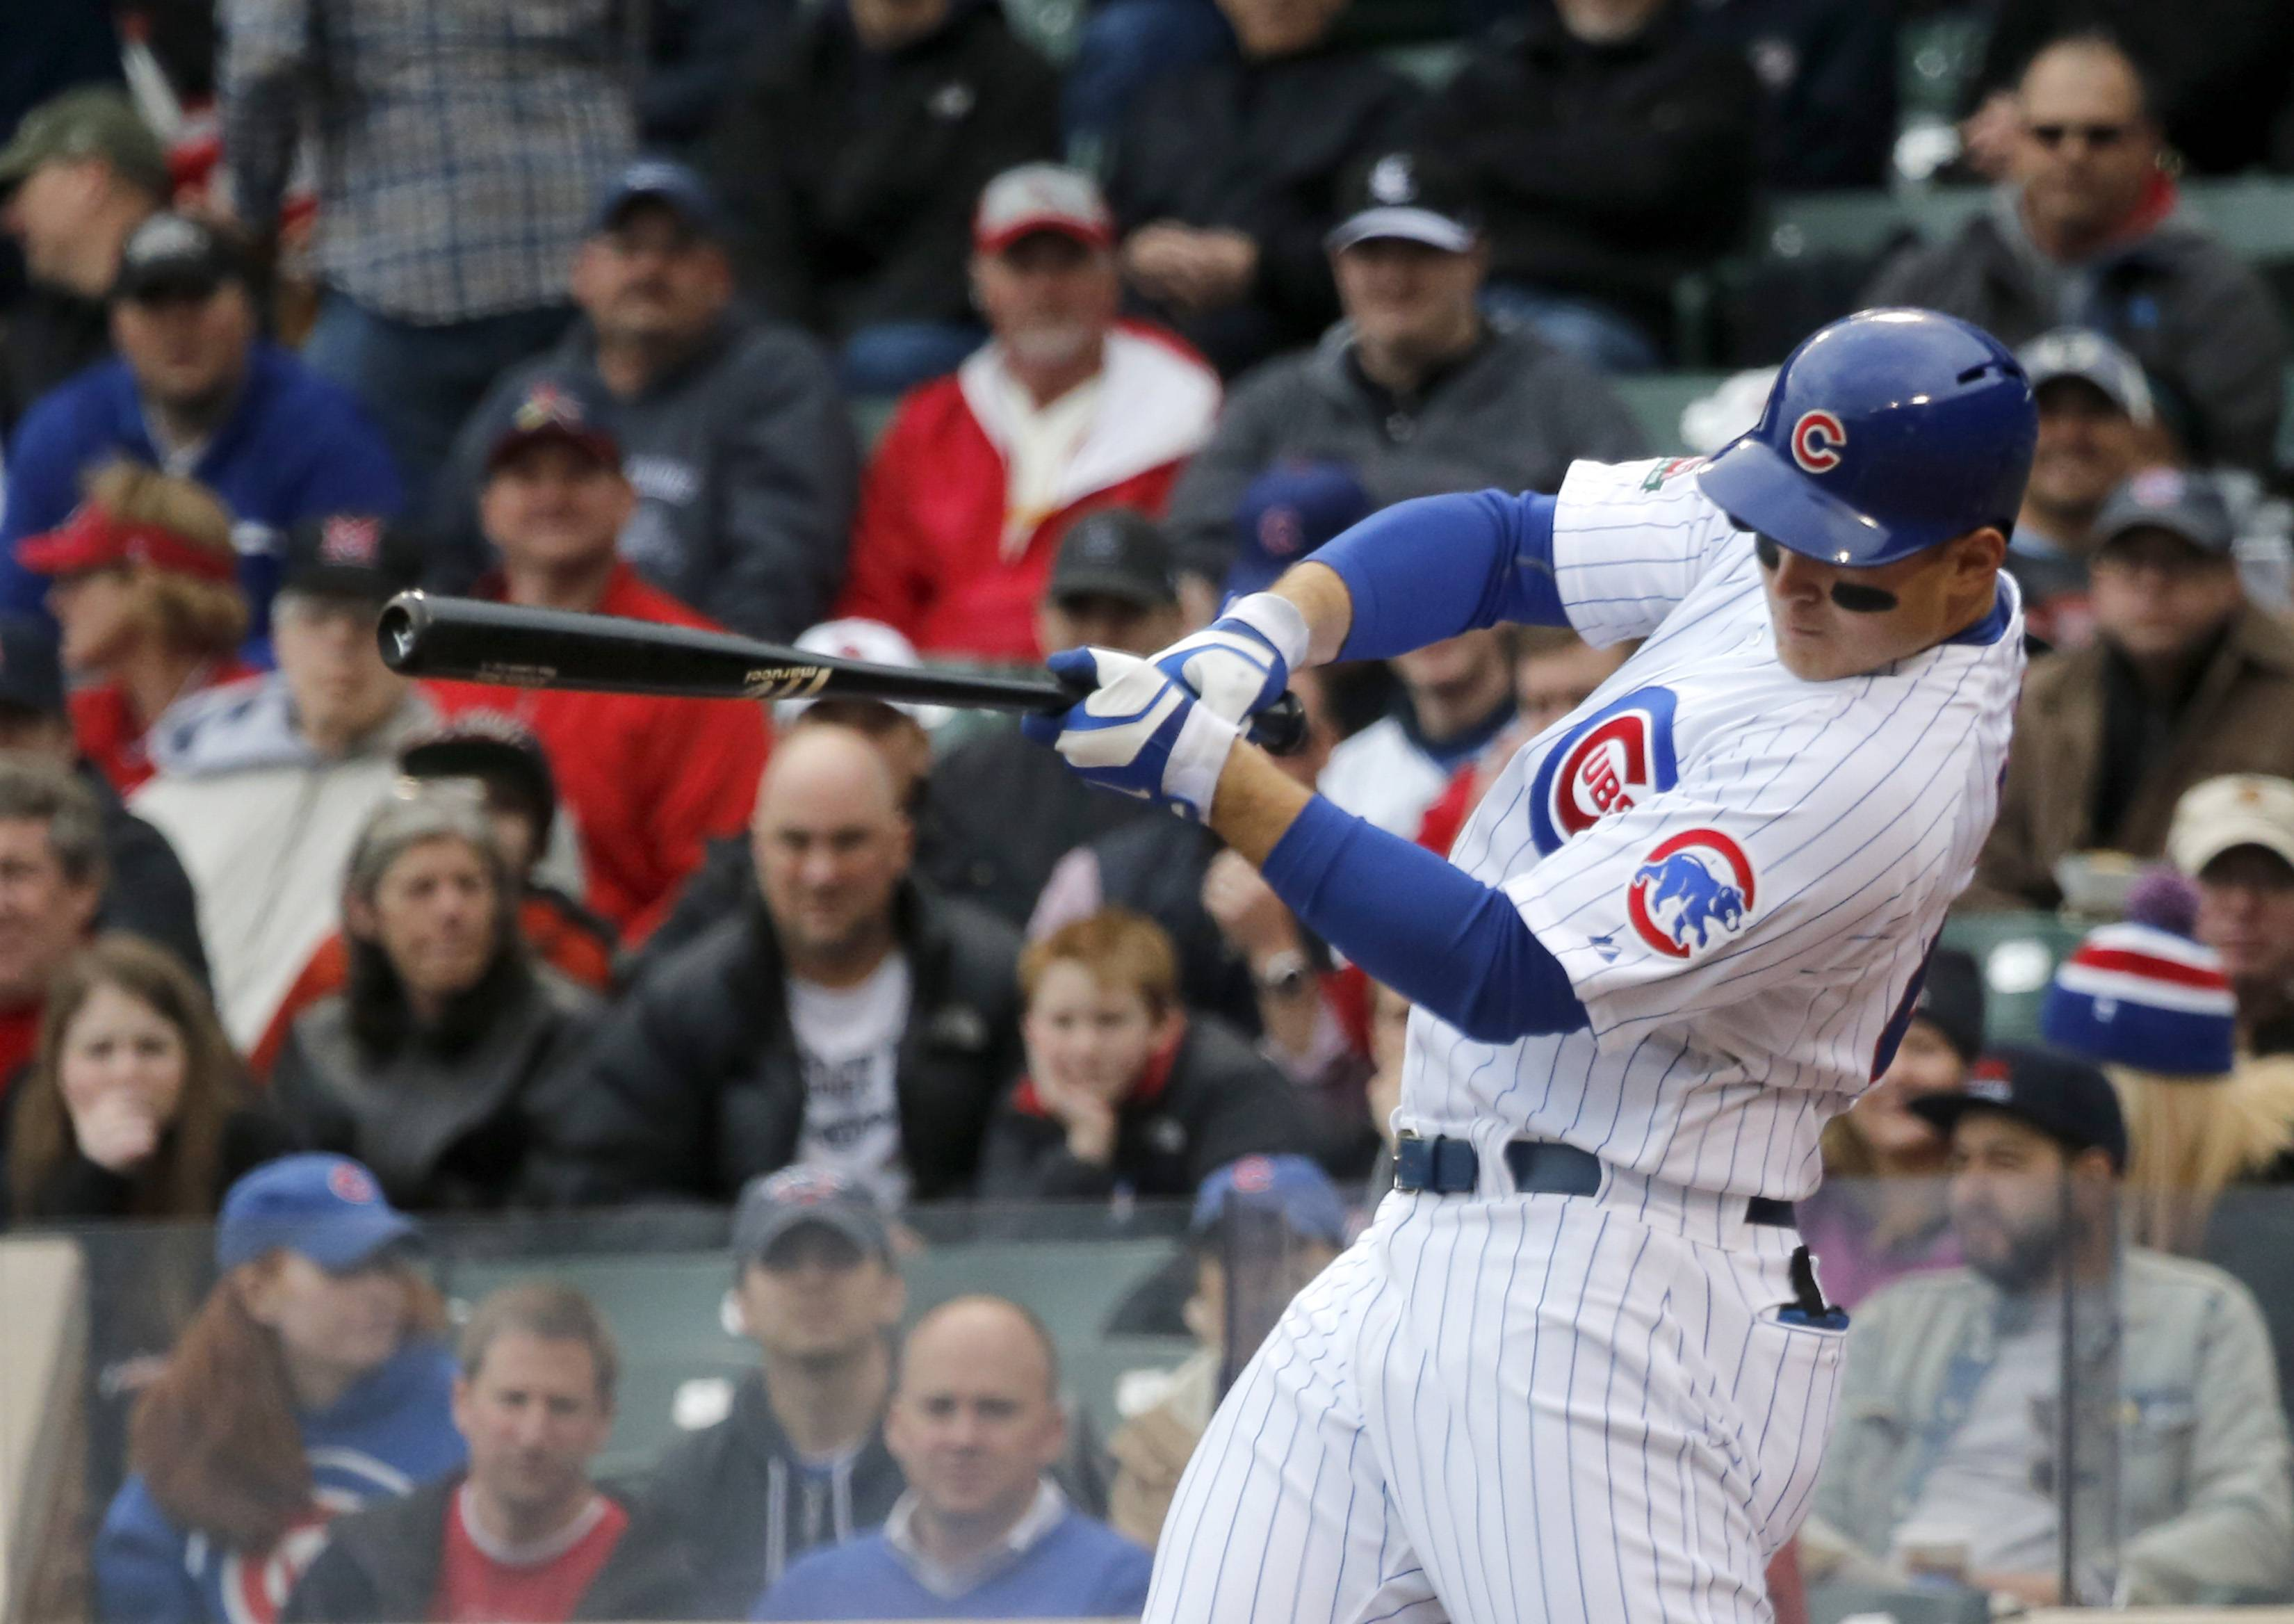 Anthony Rizzo collected a 2-run single and and solo homer Friday in the Cubs' 6-5 victory over the Cardinals at Wrigley Field.